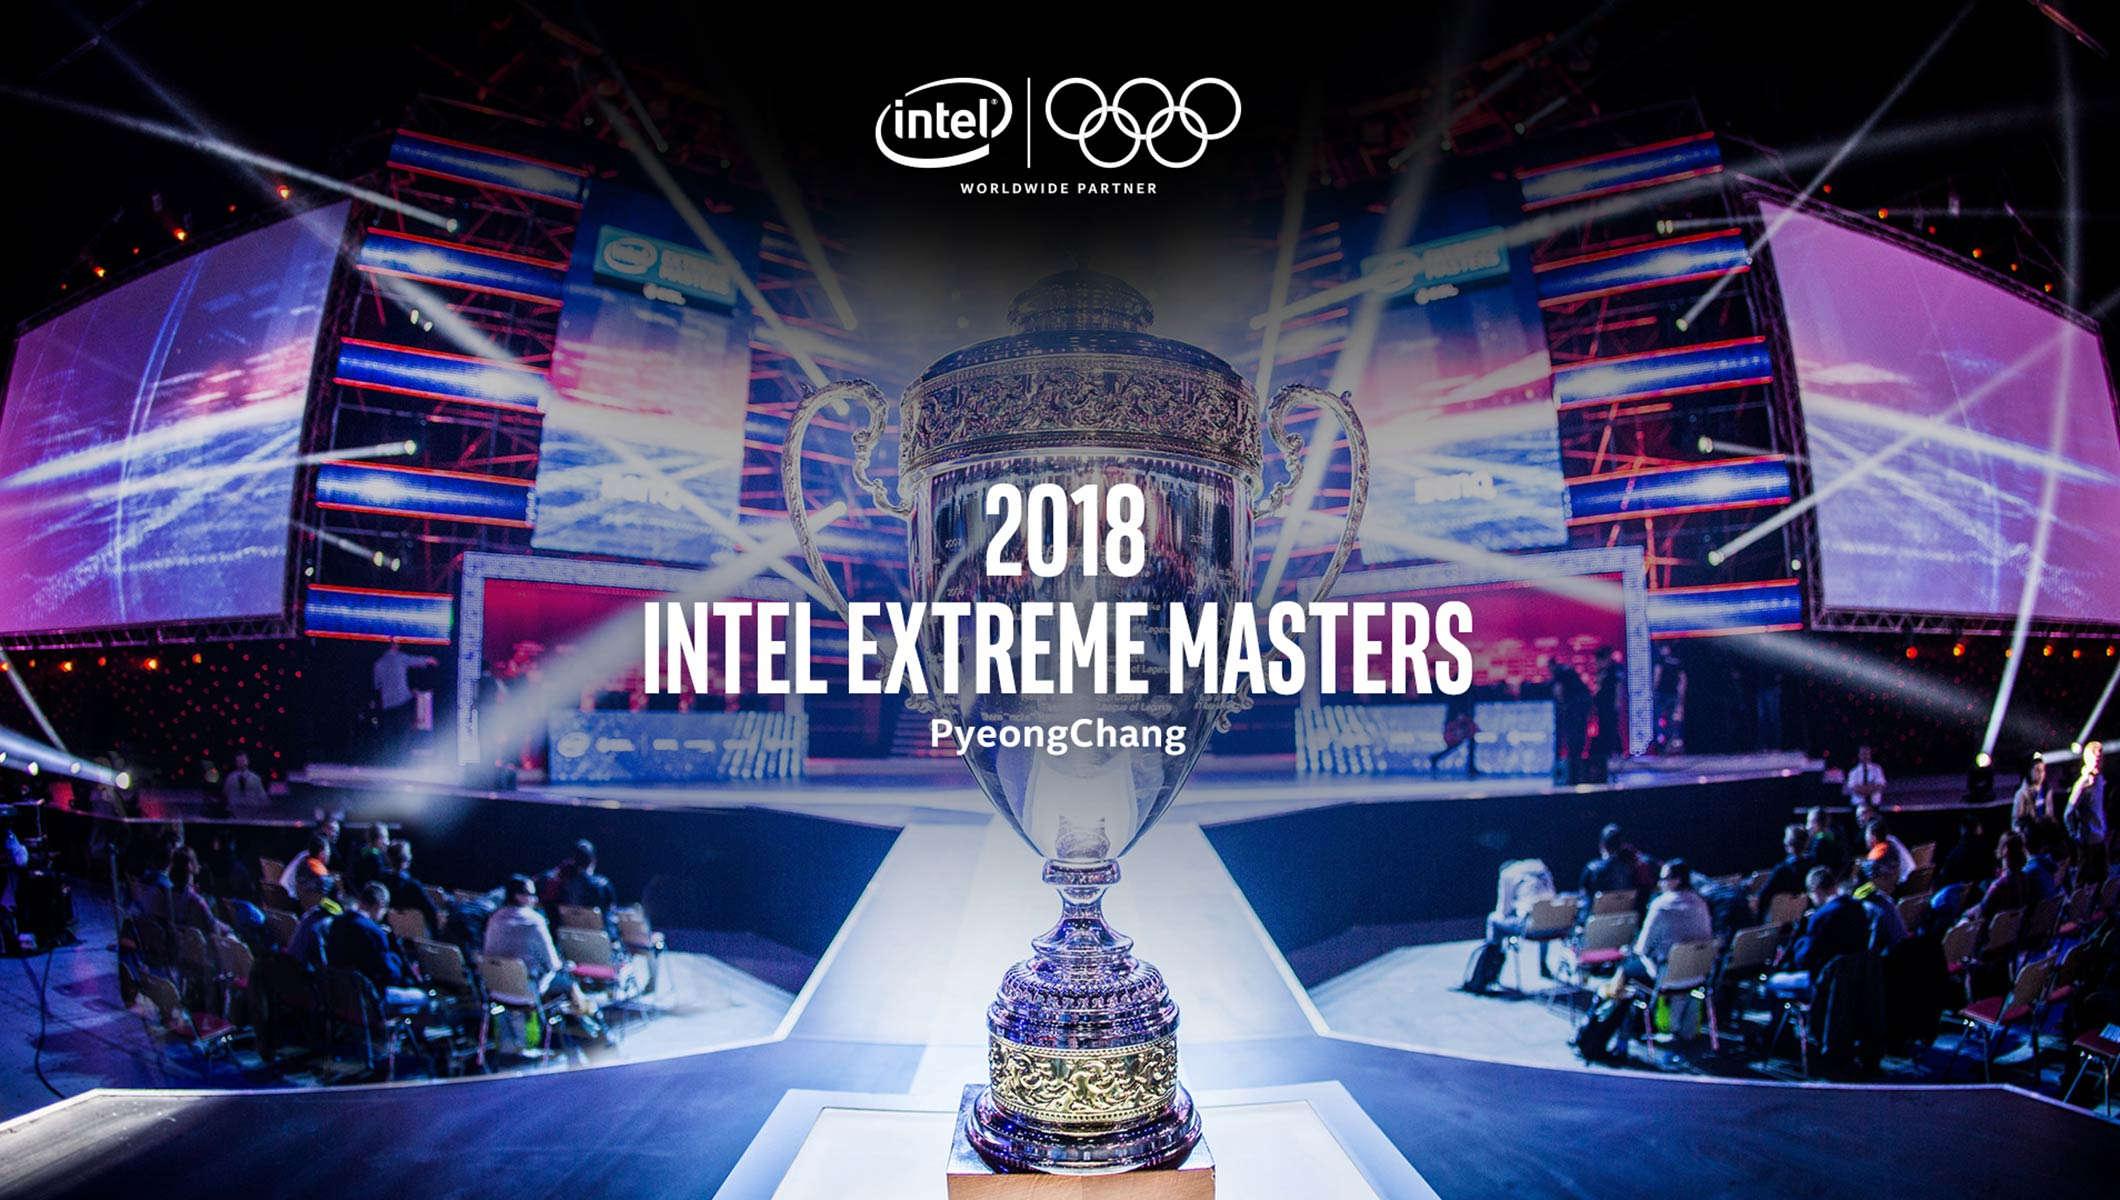 Pyeongchang 2020 Olympic Winter Games.Intel Brings Esports To Pyeongchang Ahead Of The Olympic